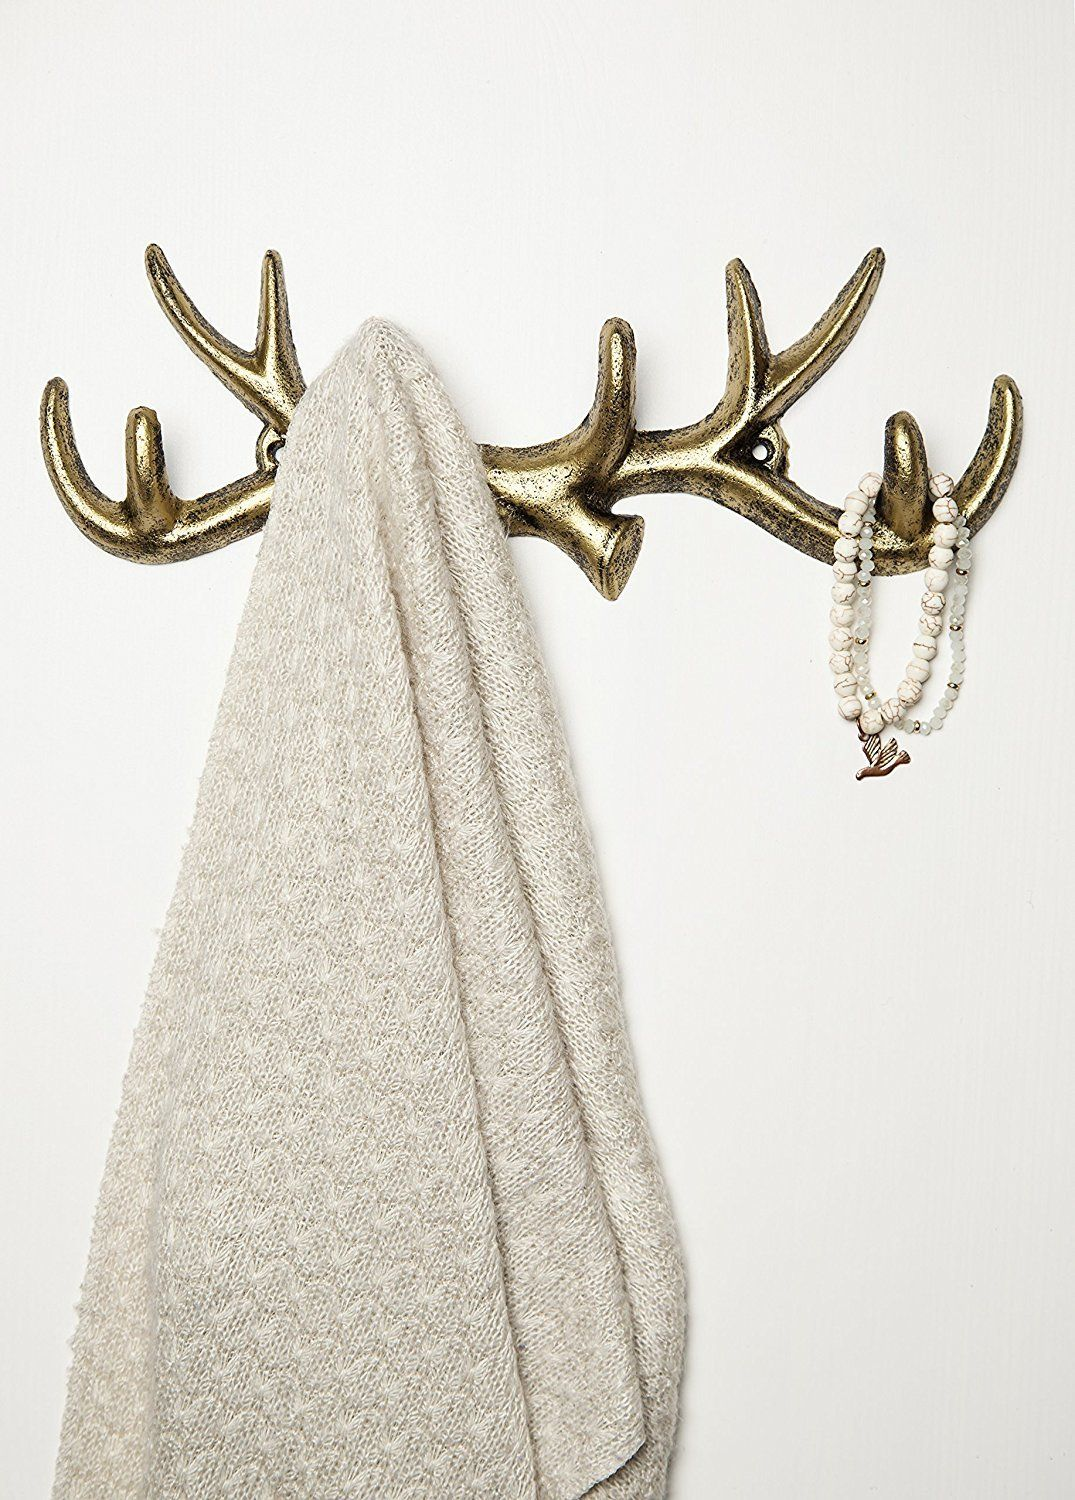 Cast Iron Deer Antlers Decorative Wall Hooks Wall Mounted Coat